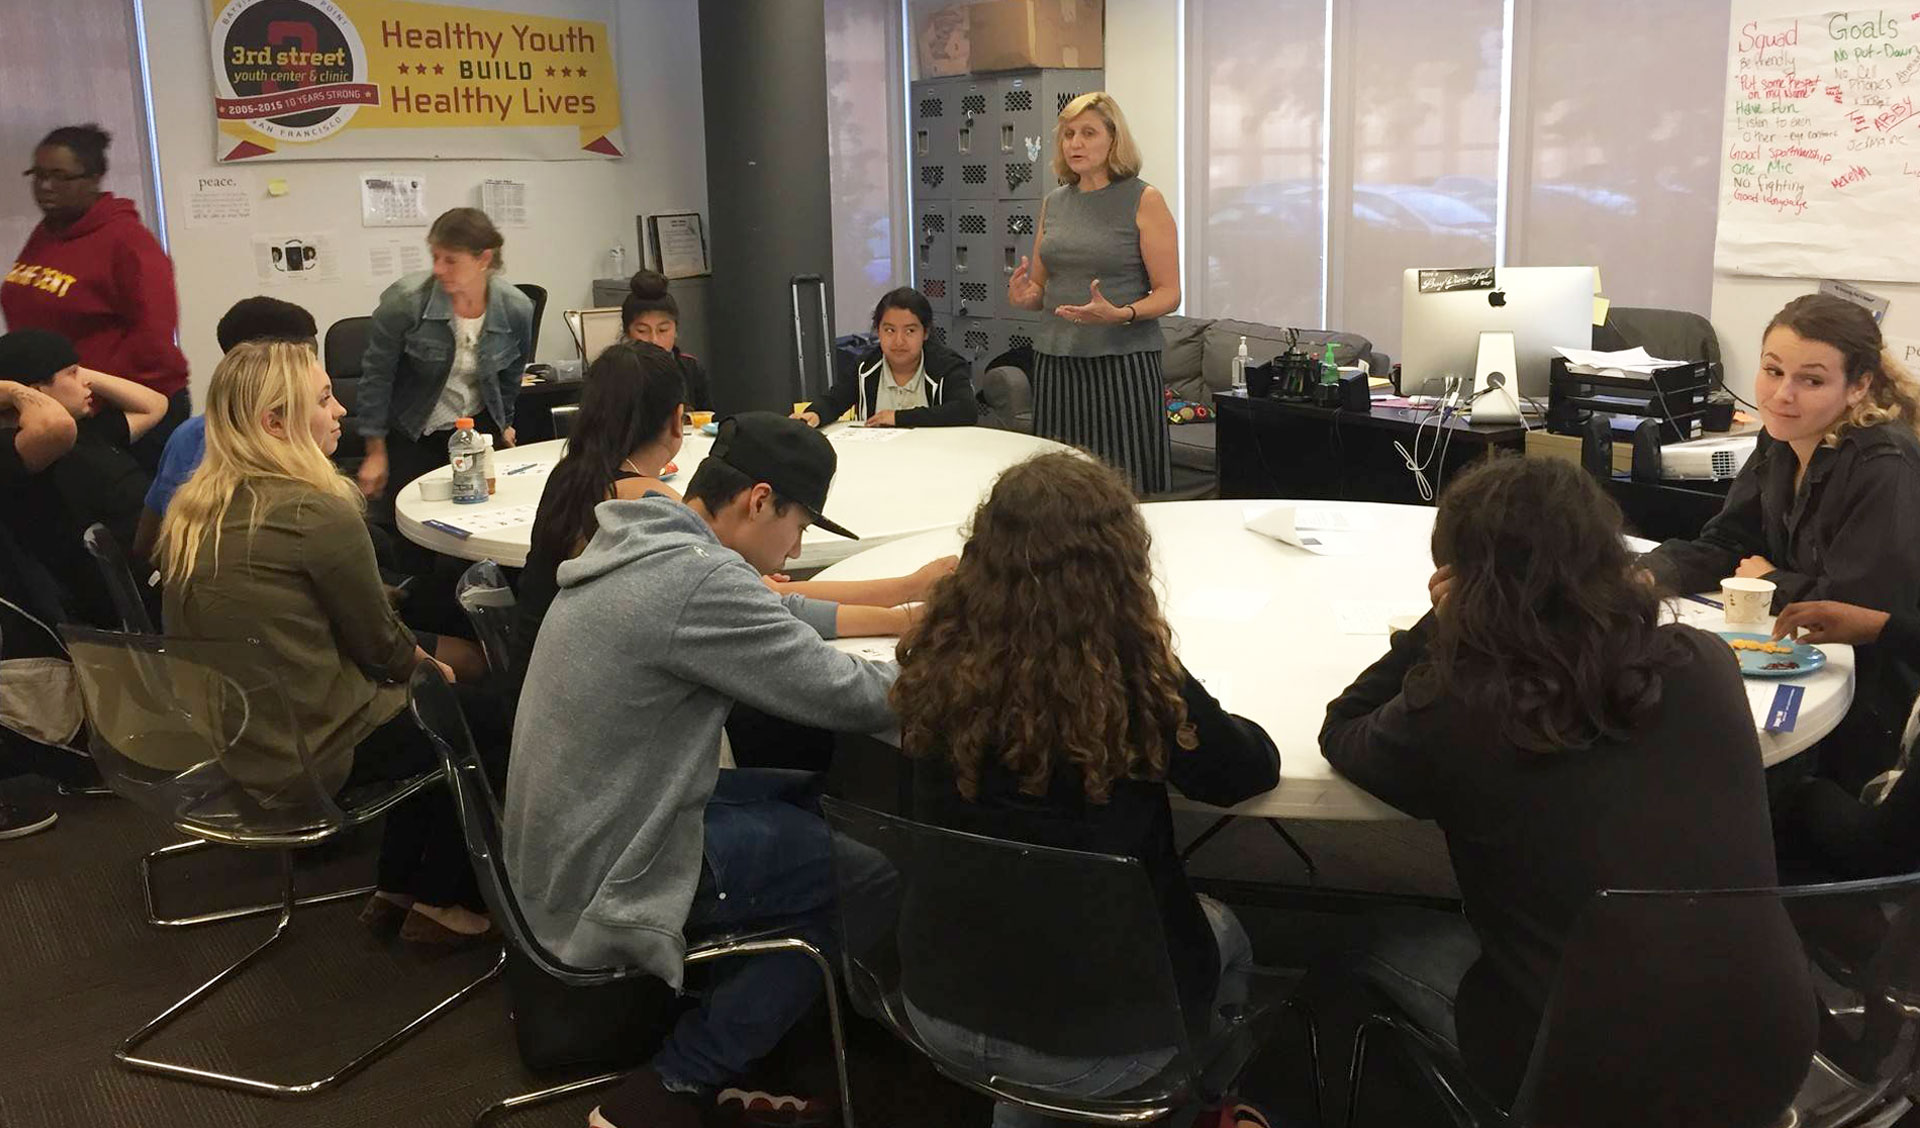 Lisa Thurau of nonprofit Strategies for Youth leads a workshop about juvenile justice at the 3rd Street Youth Center & Clinic in San Francisco's Bayview neighborhood.